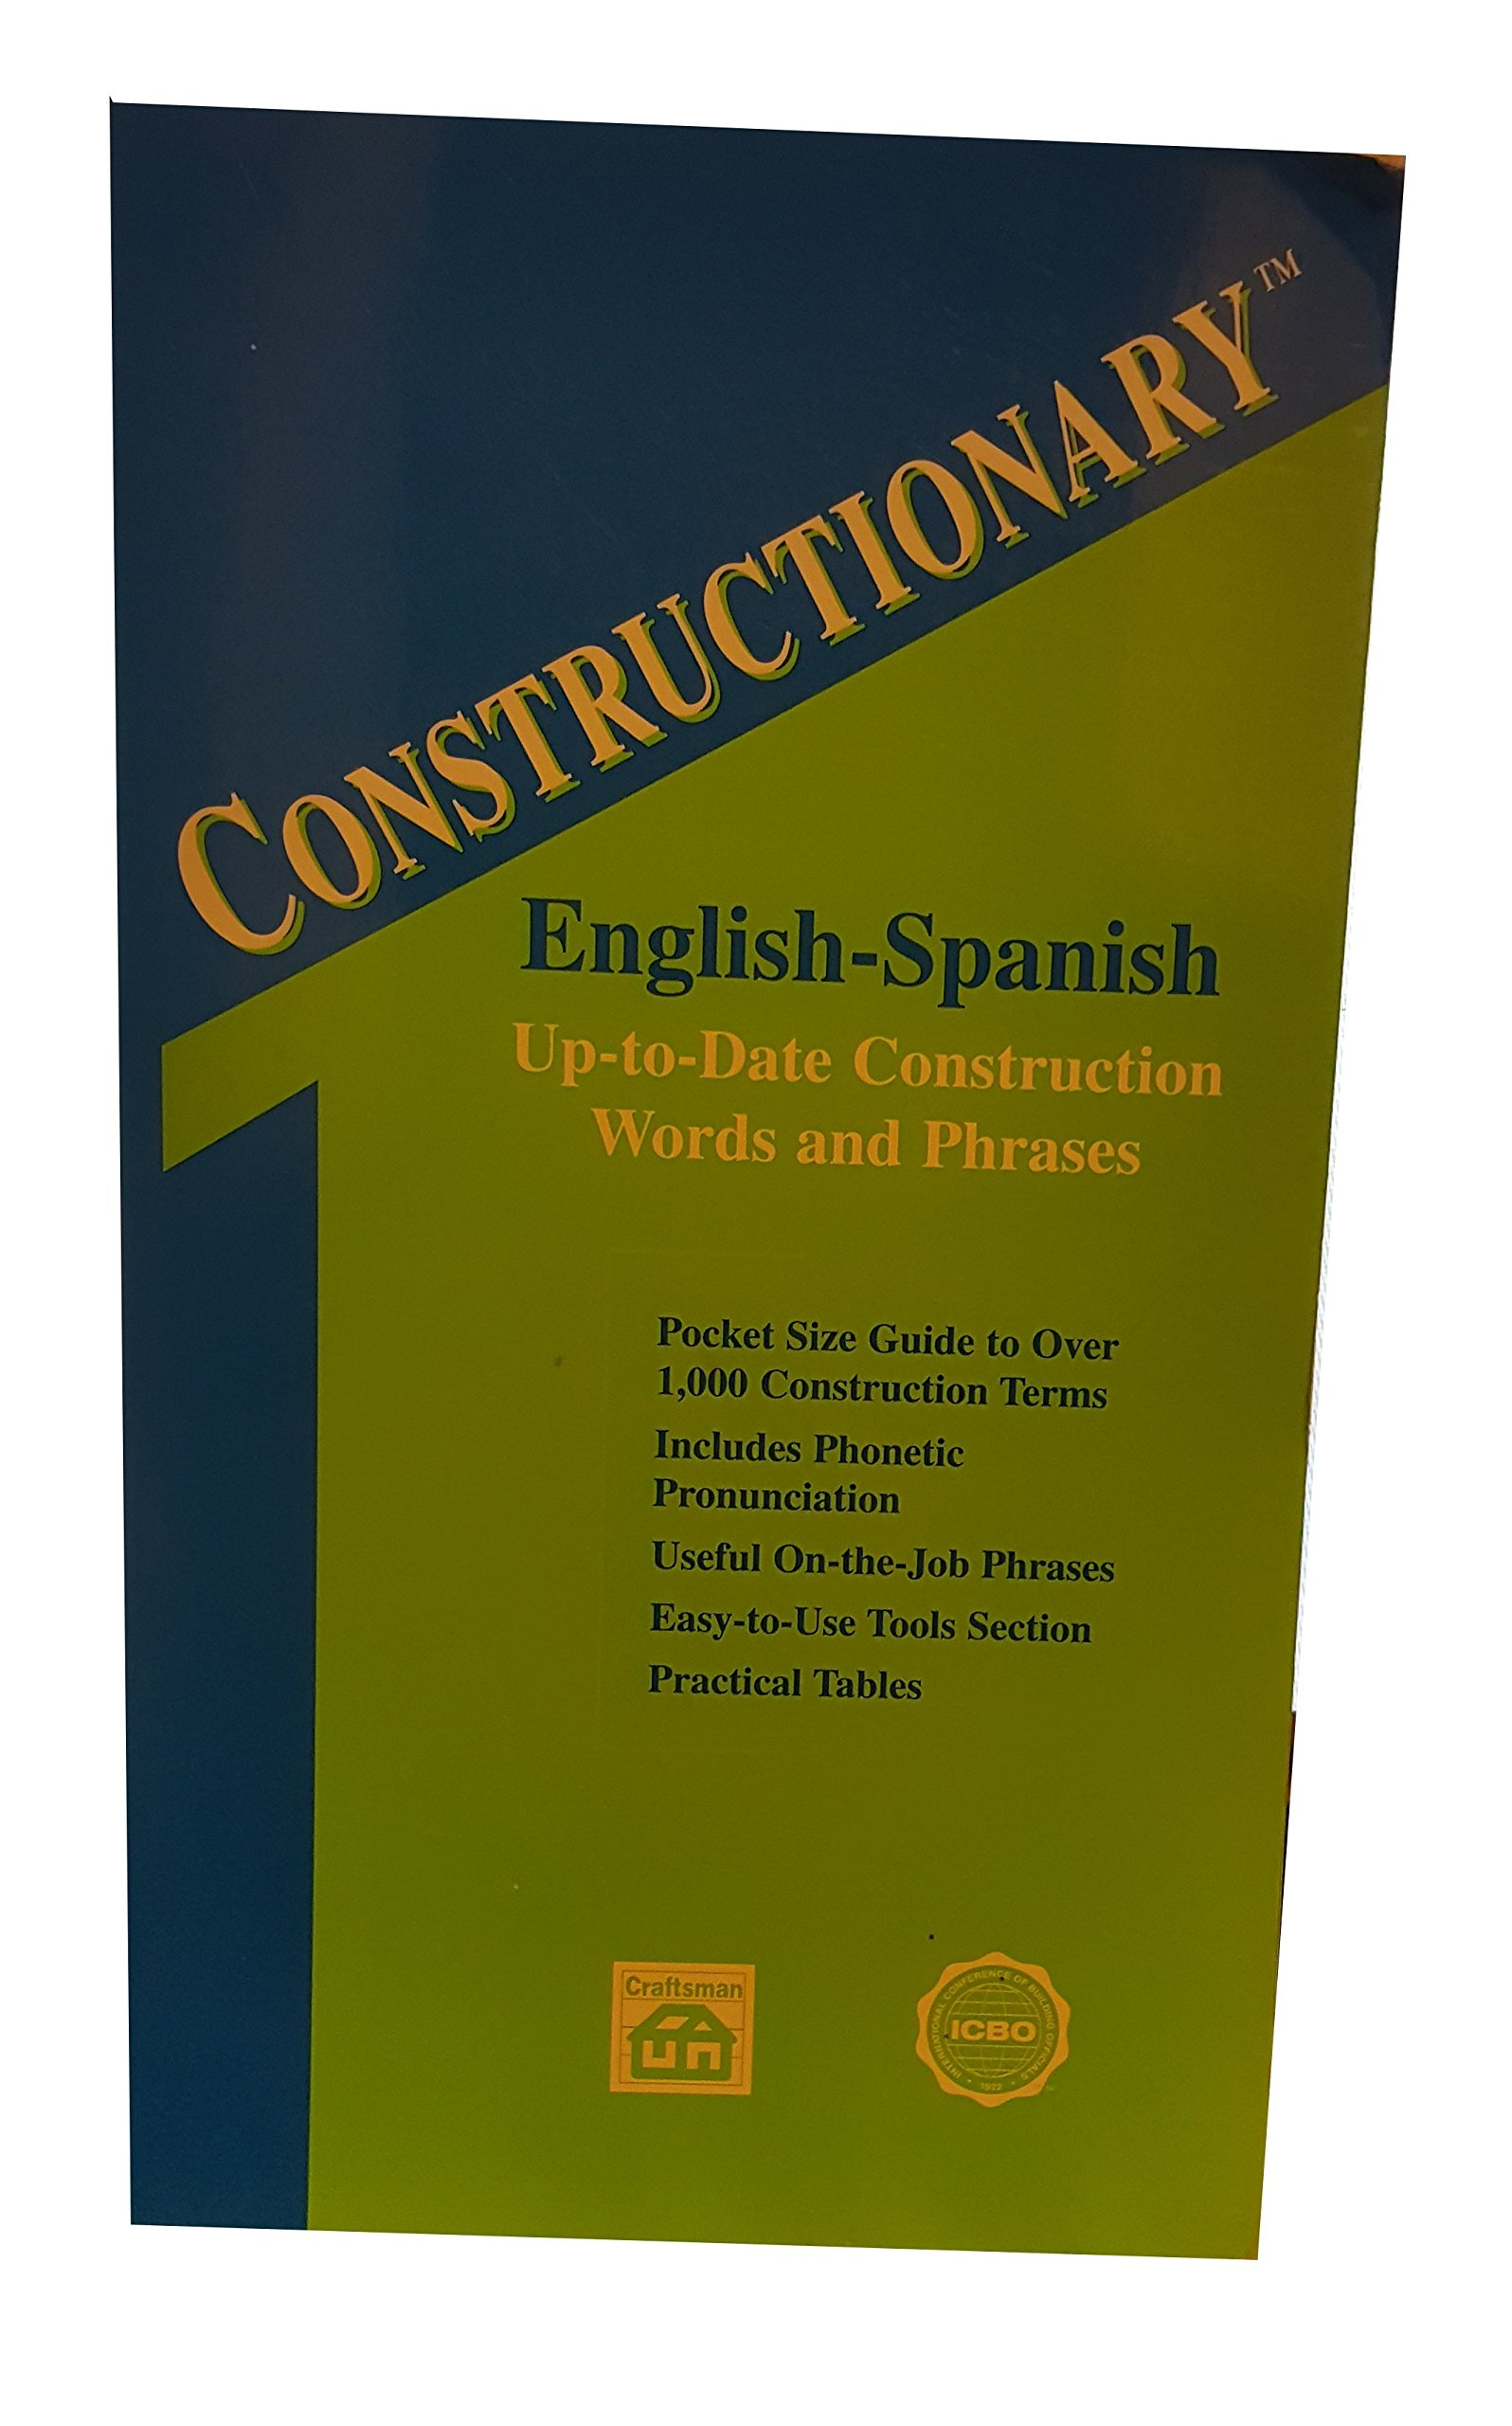 Download Constructionary: English-Spanish up-to-date construction words and phrases ebook